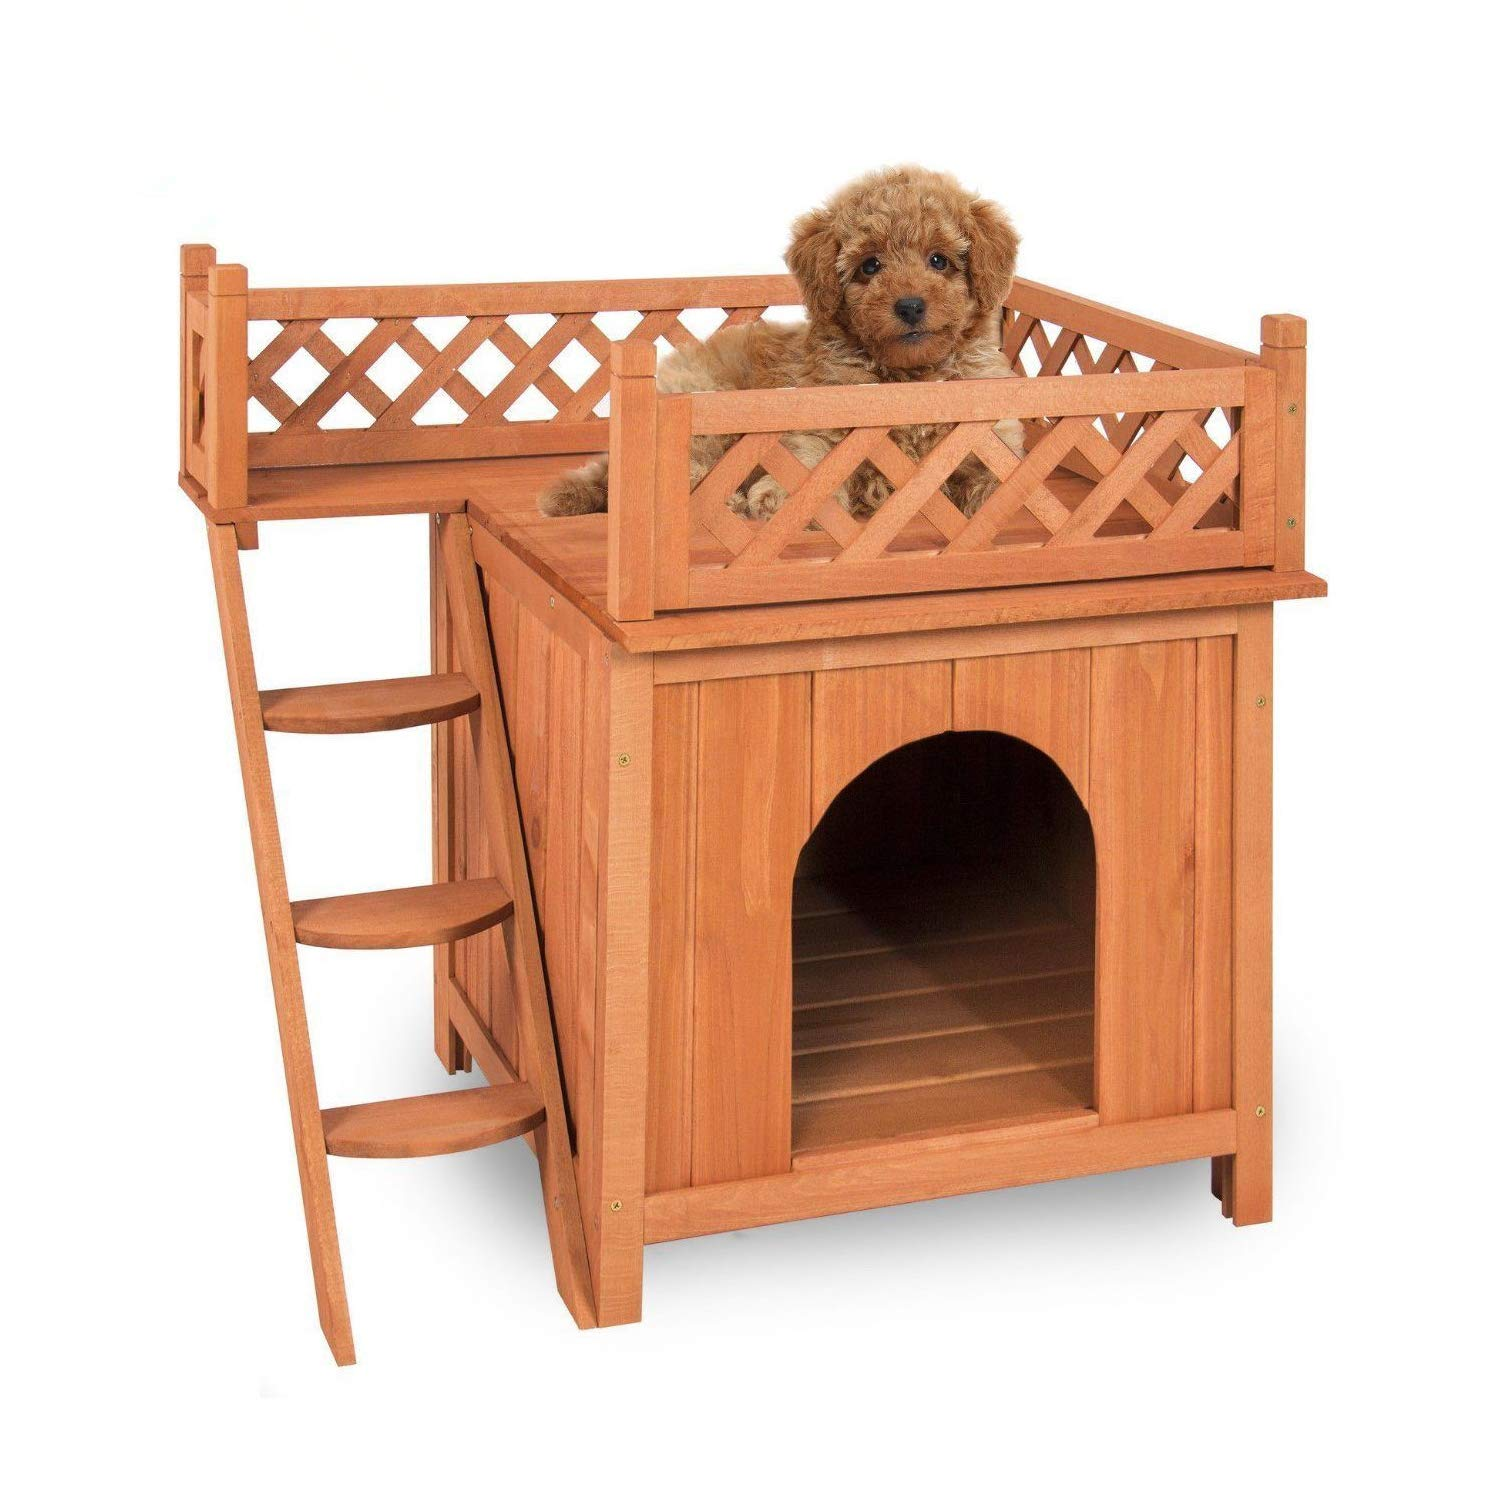 Merax Indoor/Outdoor Pet Dog Wood House with Side Steps and Balcony, Natural Color